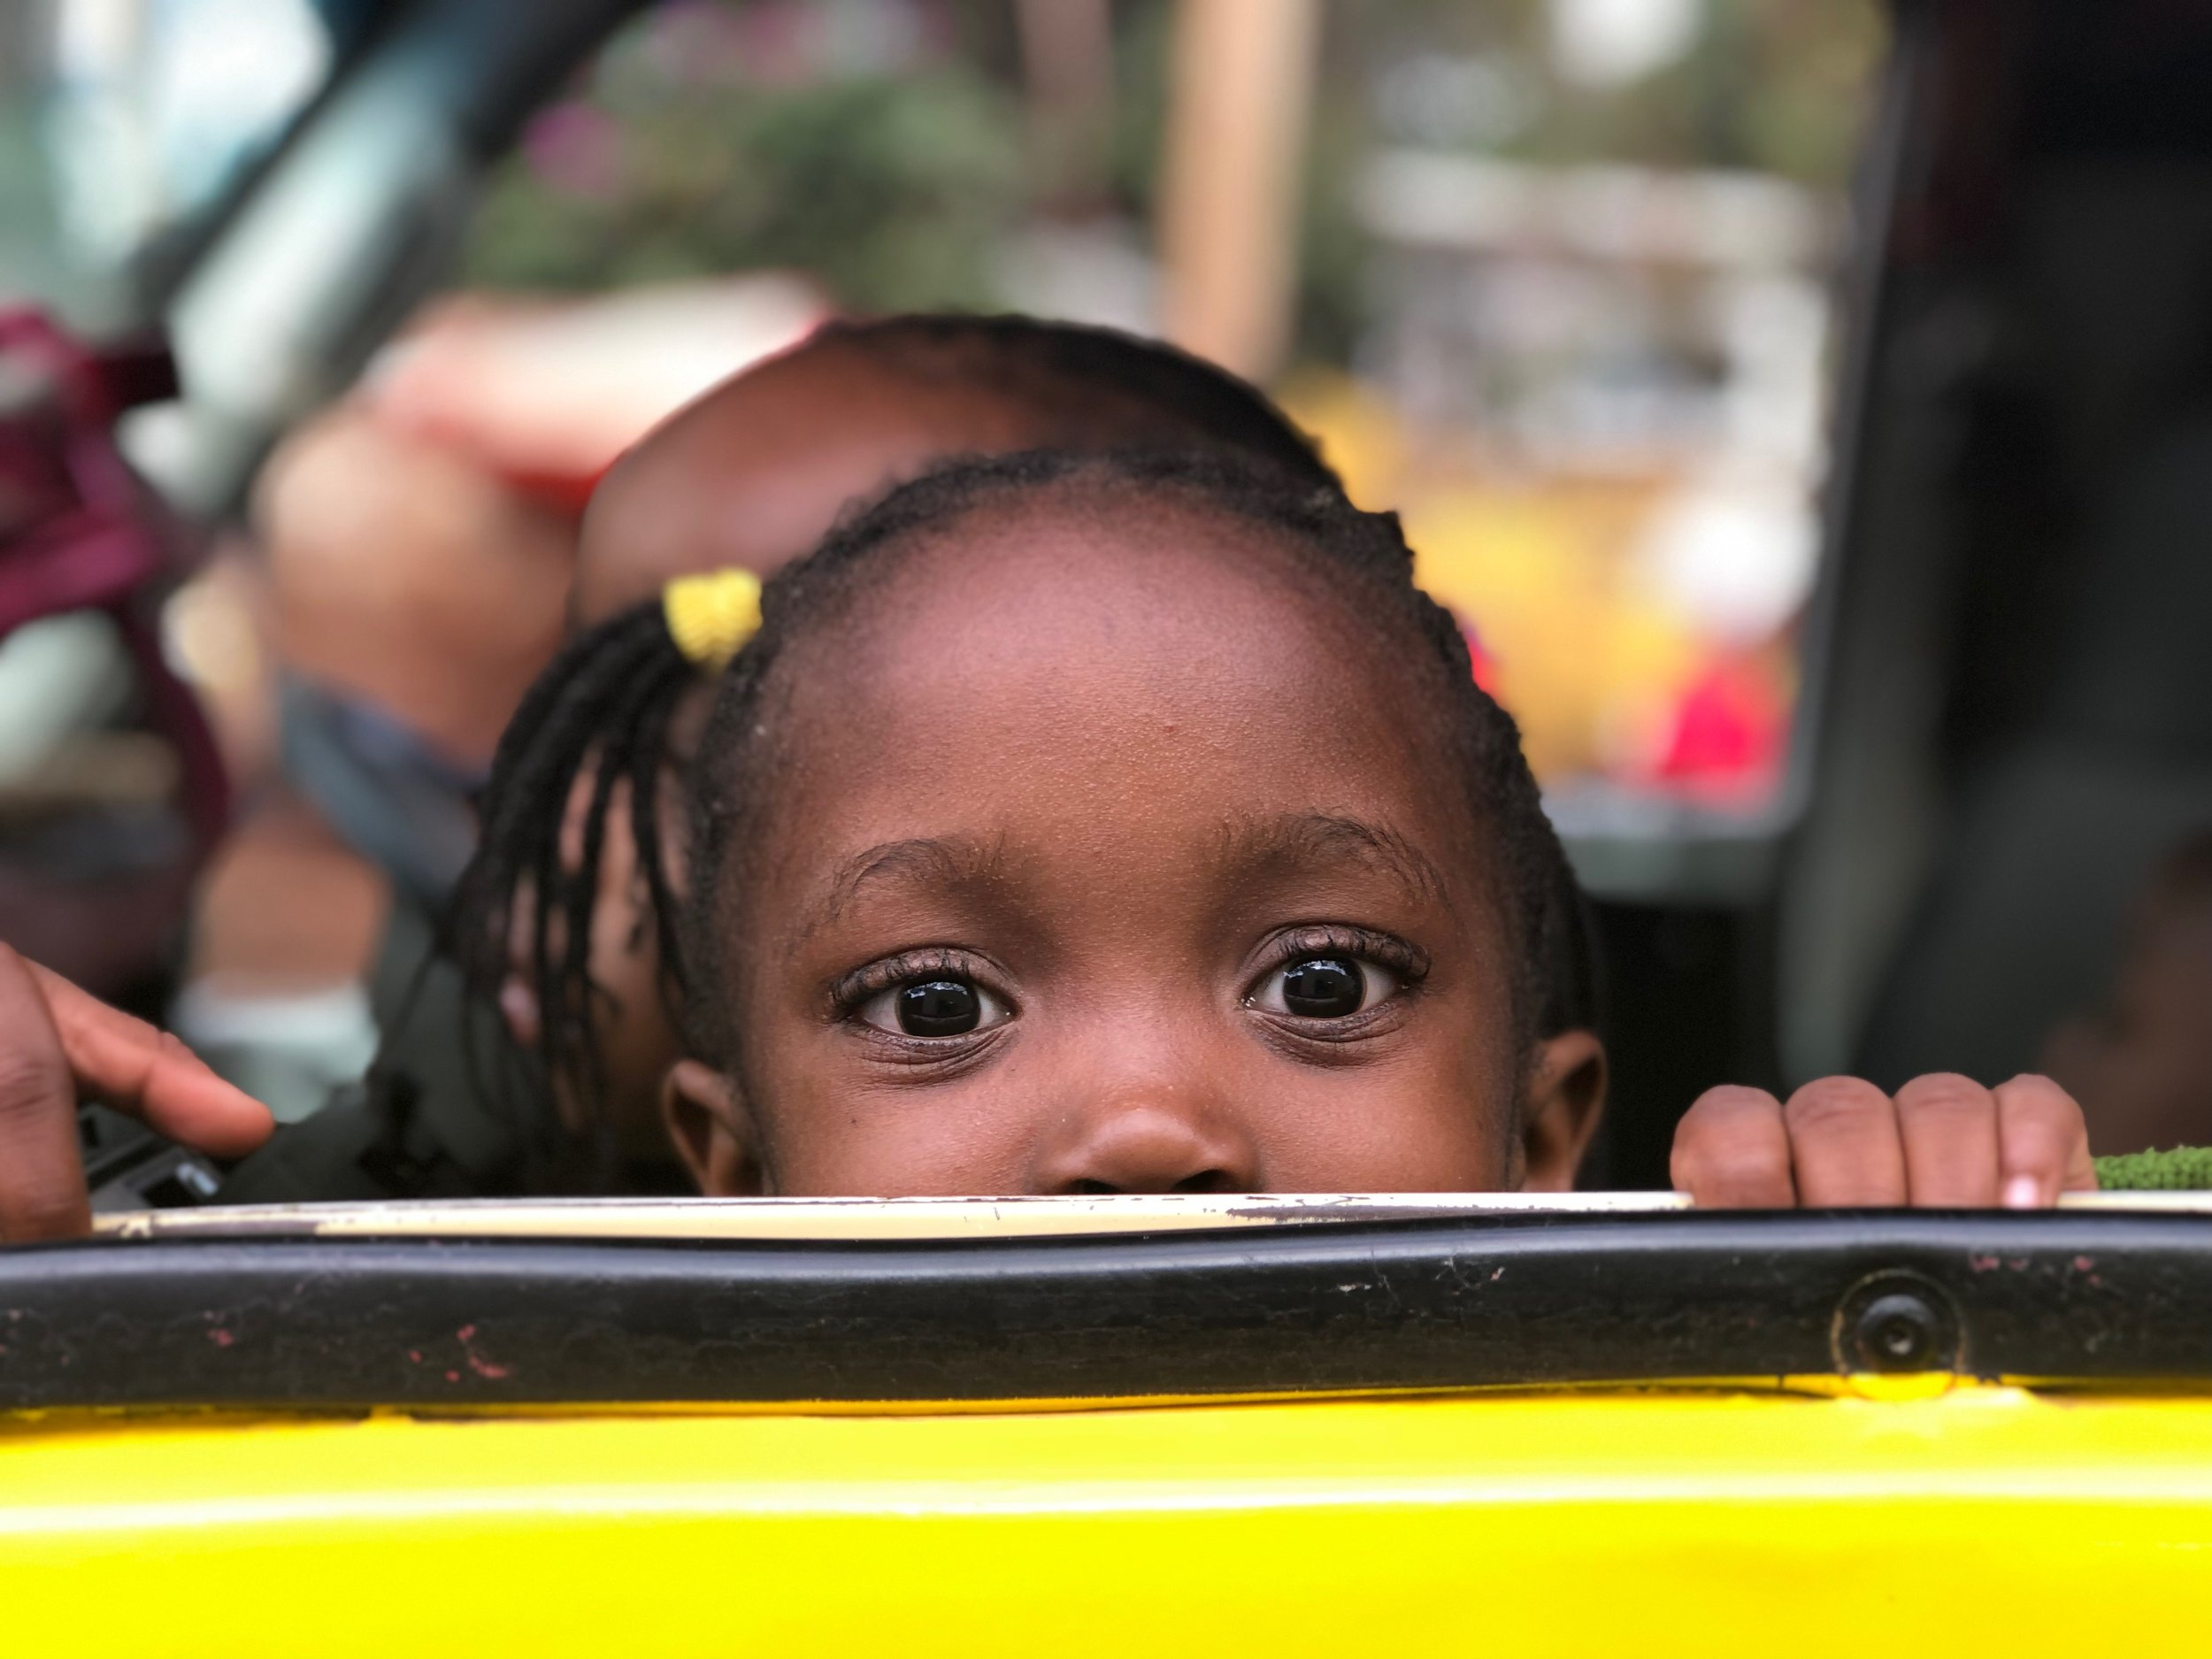 A young girl peaks over a car window as she leaves Sunflower to go home at the end of the day.